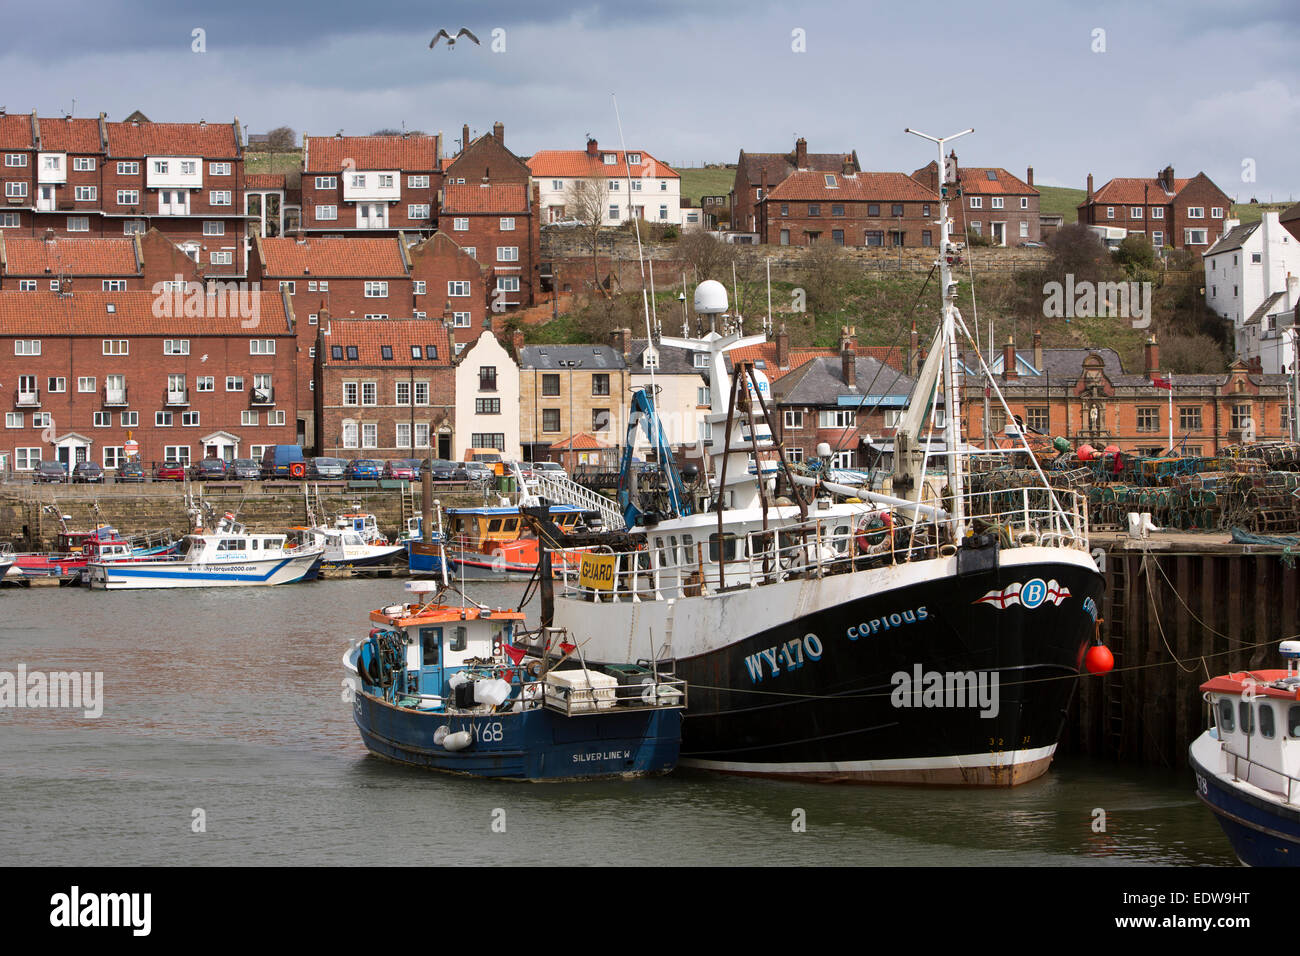 UK, England, Yorkshire, Whitby, New Quay, fishing boat Copious at mooring Stock Photo